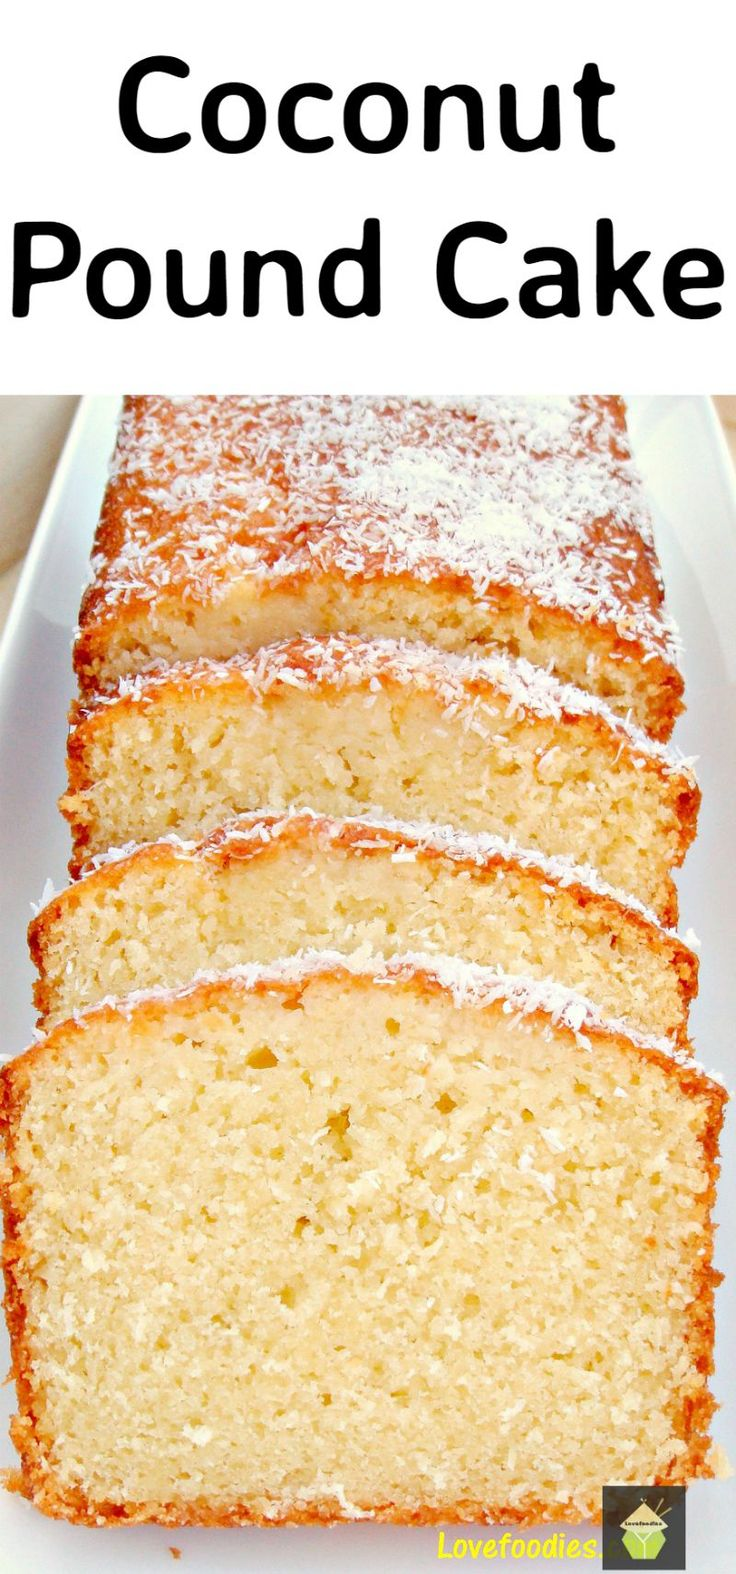 17 Best Images About Cake On Pinterest Snack Cakes Pina